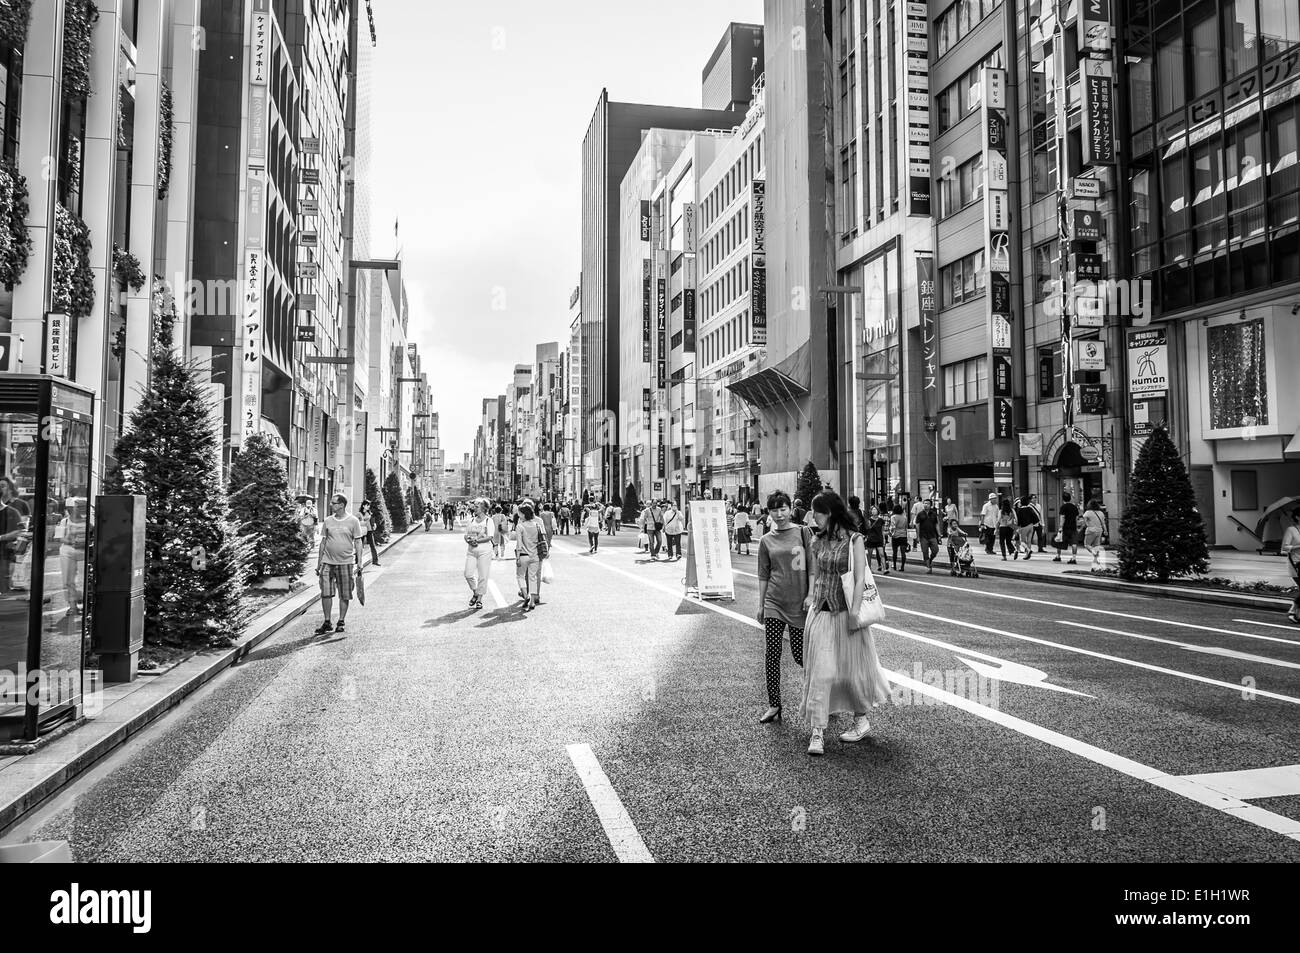 Shoppers wander the streets of Ginza in Tokyo, Japan. Stock Photo